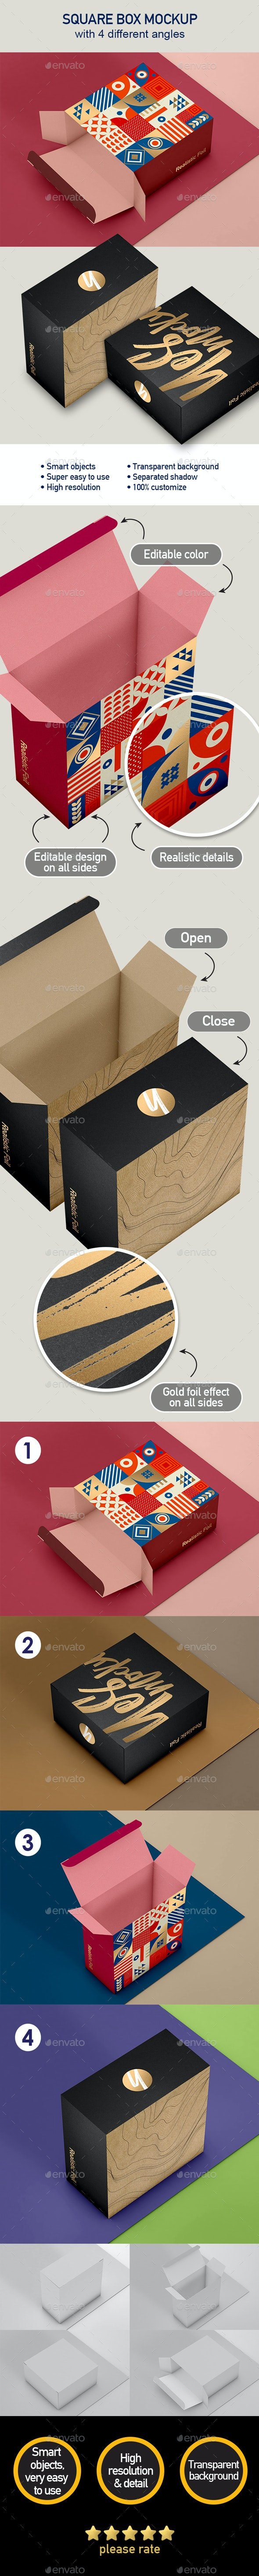 Box Mockup for Packaging Showcase with 4 views - Packaging Product Mock-Ups